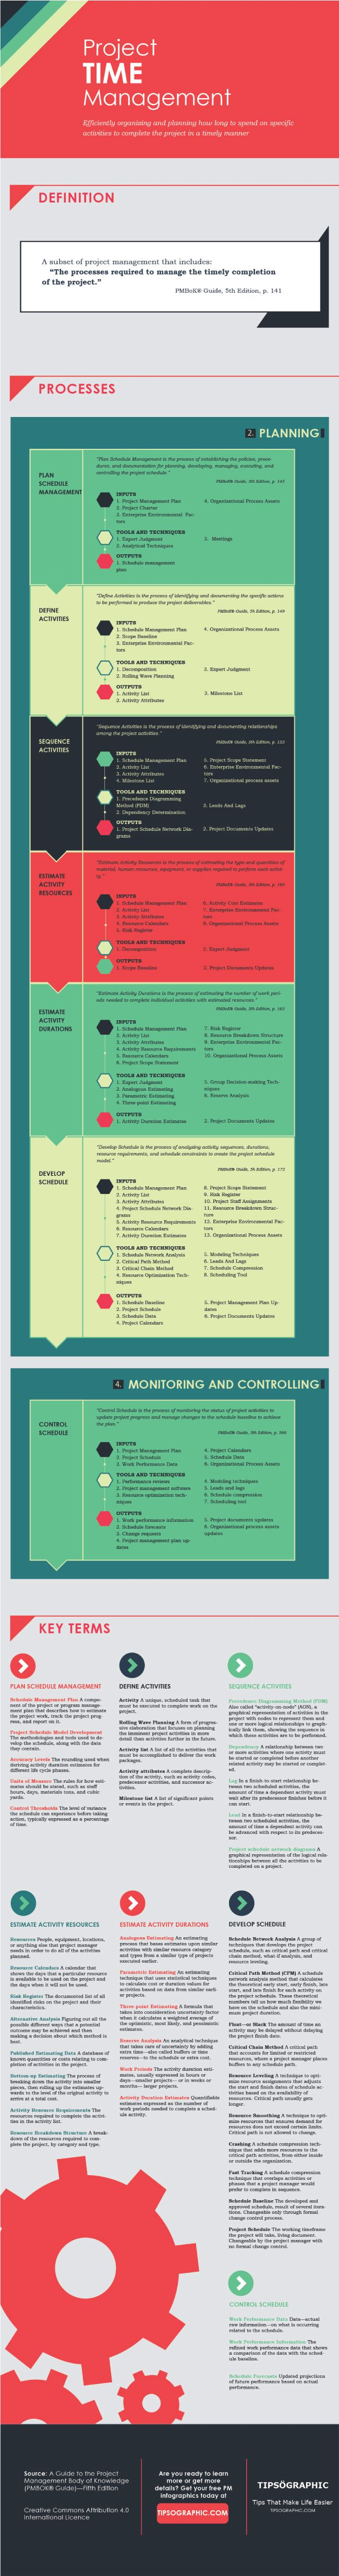 Best 25 pmp exam prep ideas on pinterest pmp exam project image titled pmp certification exam prep project time management xflitez Choice Image